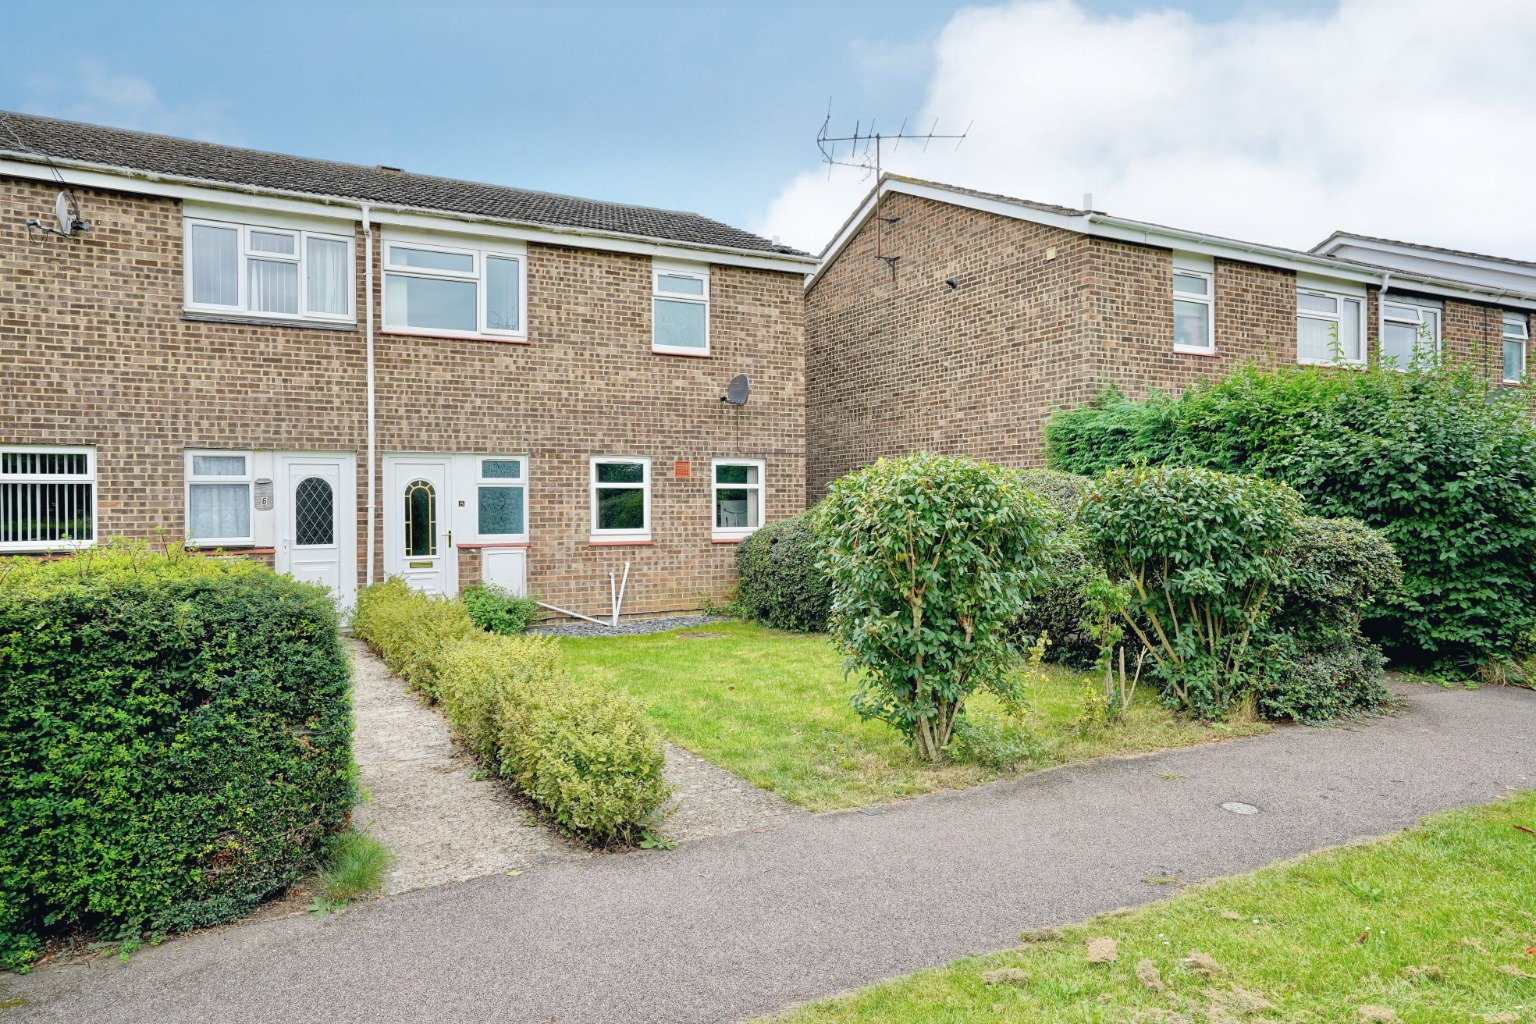 3 bed  for sale in Marquis Close, St. Neots, PE19